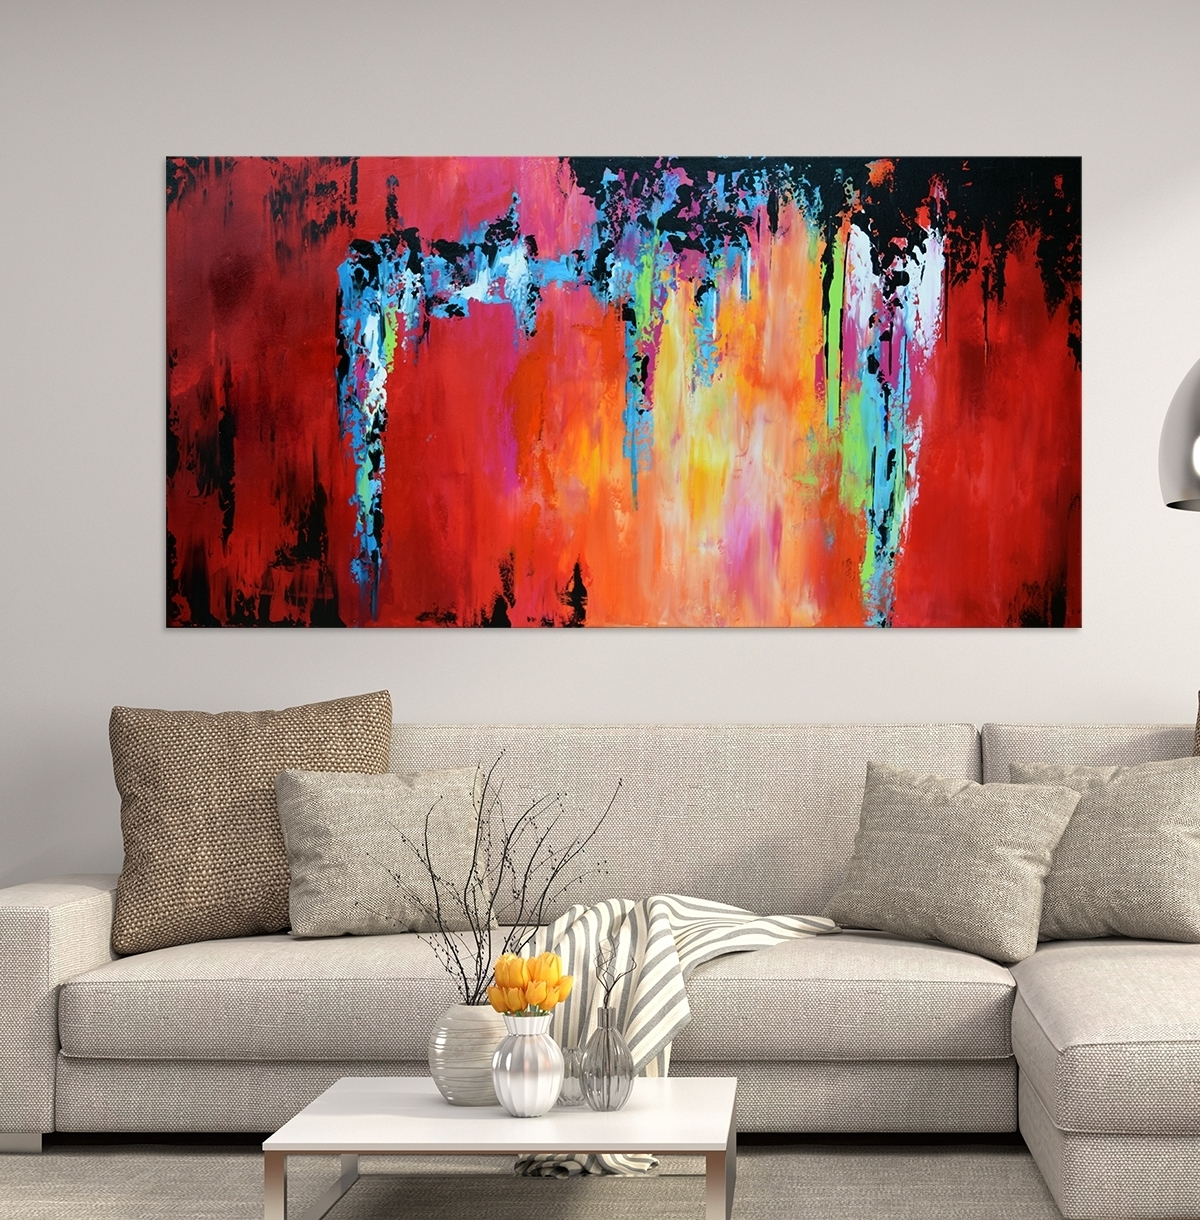 Wall Decorations Pertaining To Most Recent Large Contemporary Wall Art (View 7 of 15)